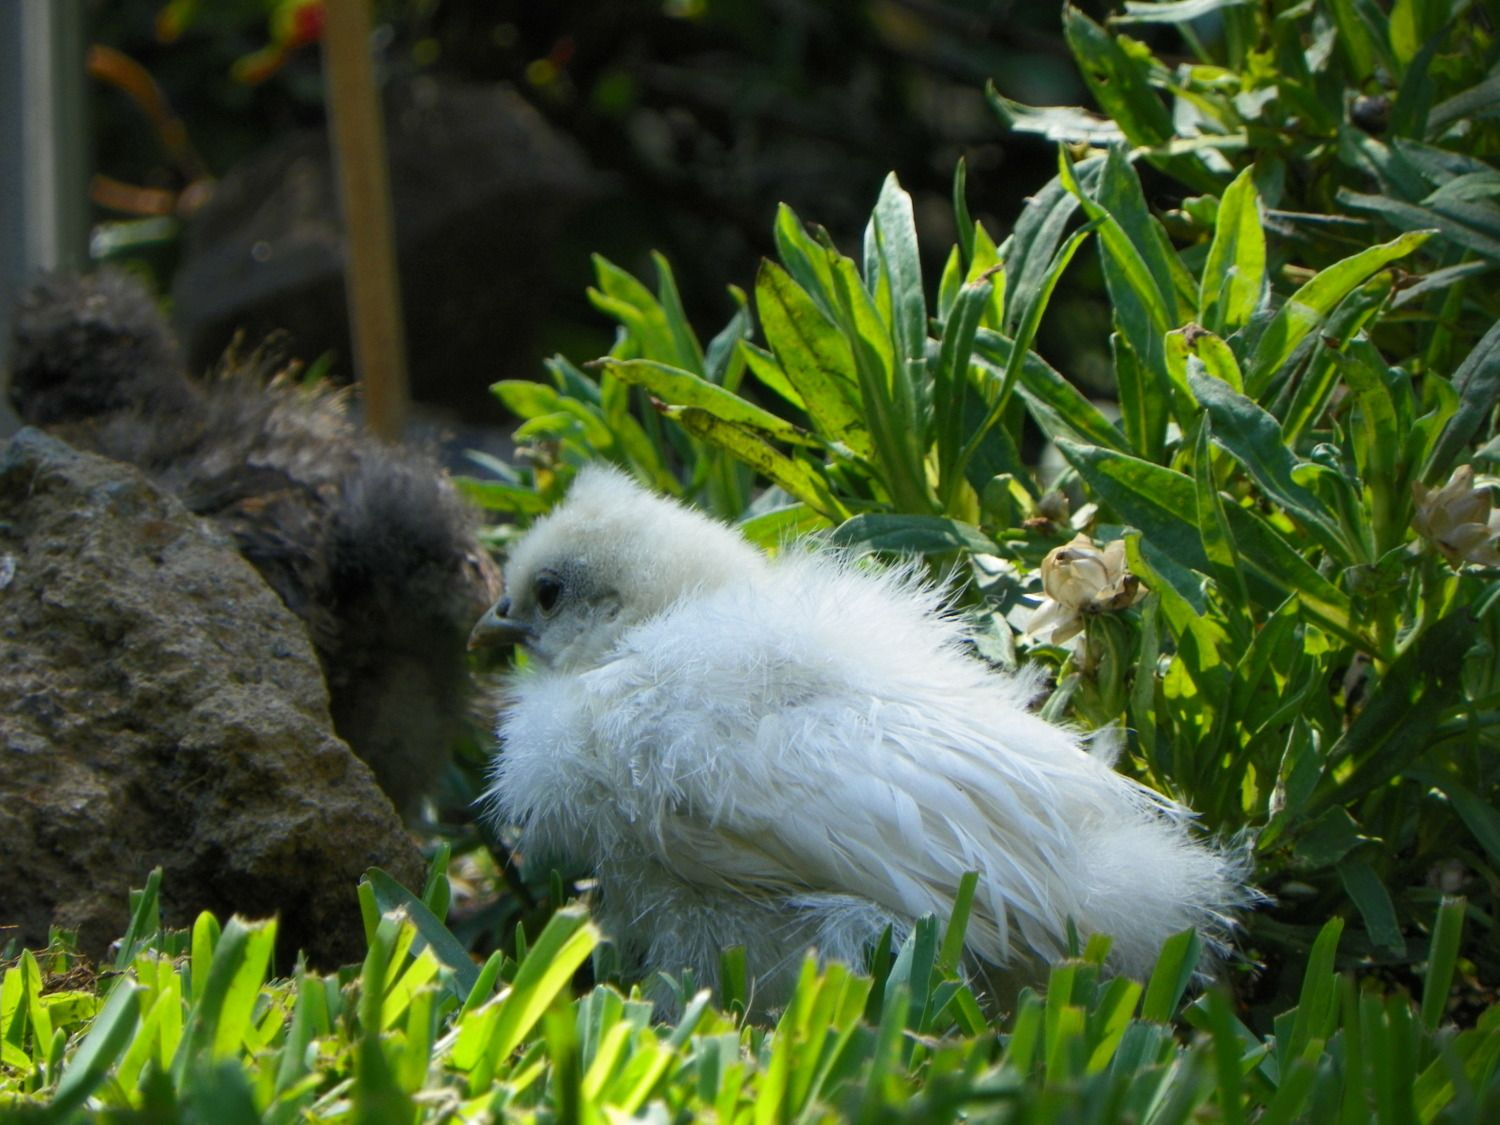 coccidiosis prevention cure and natural healing backyard chickens